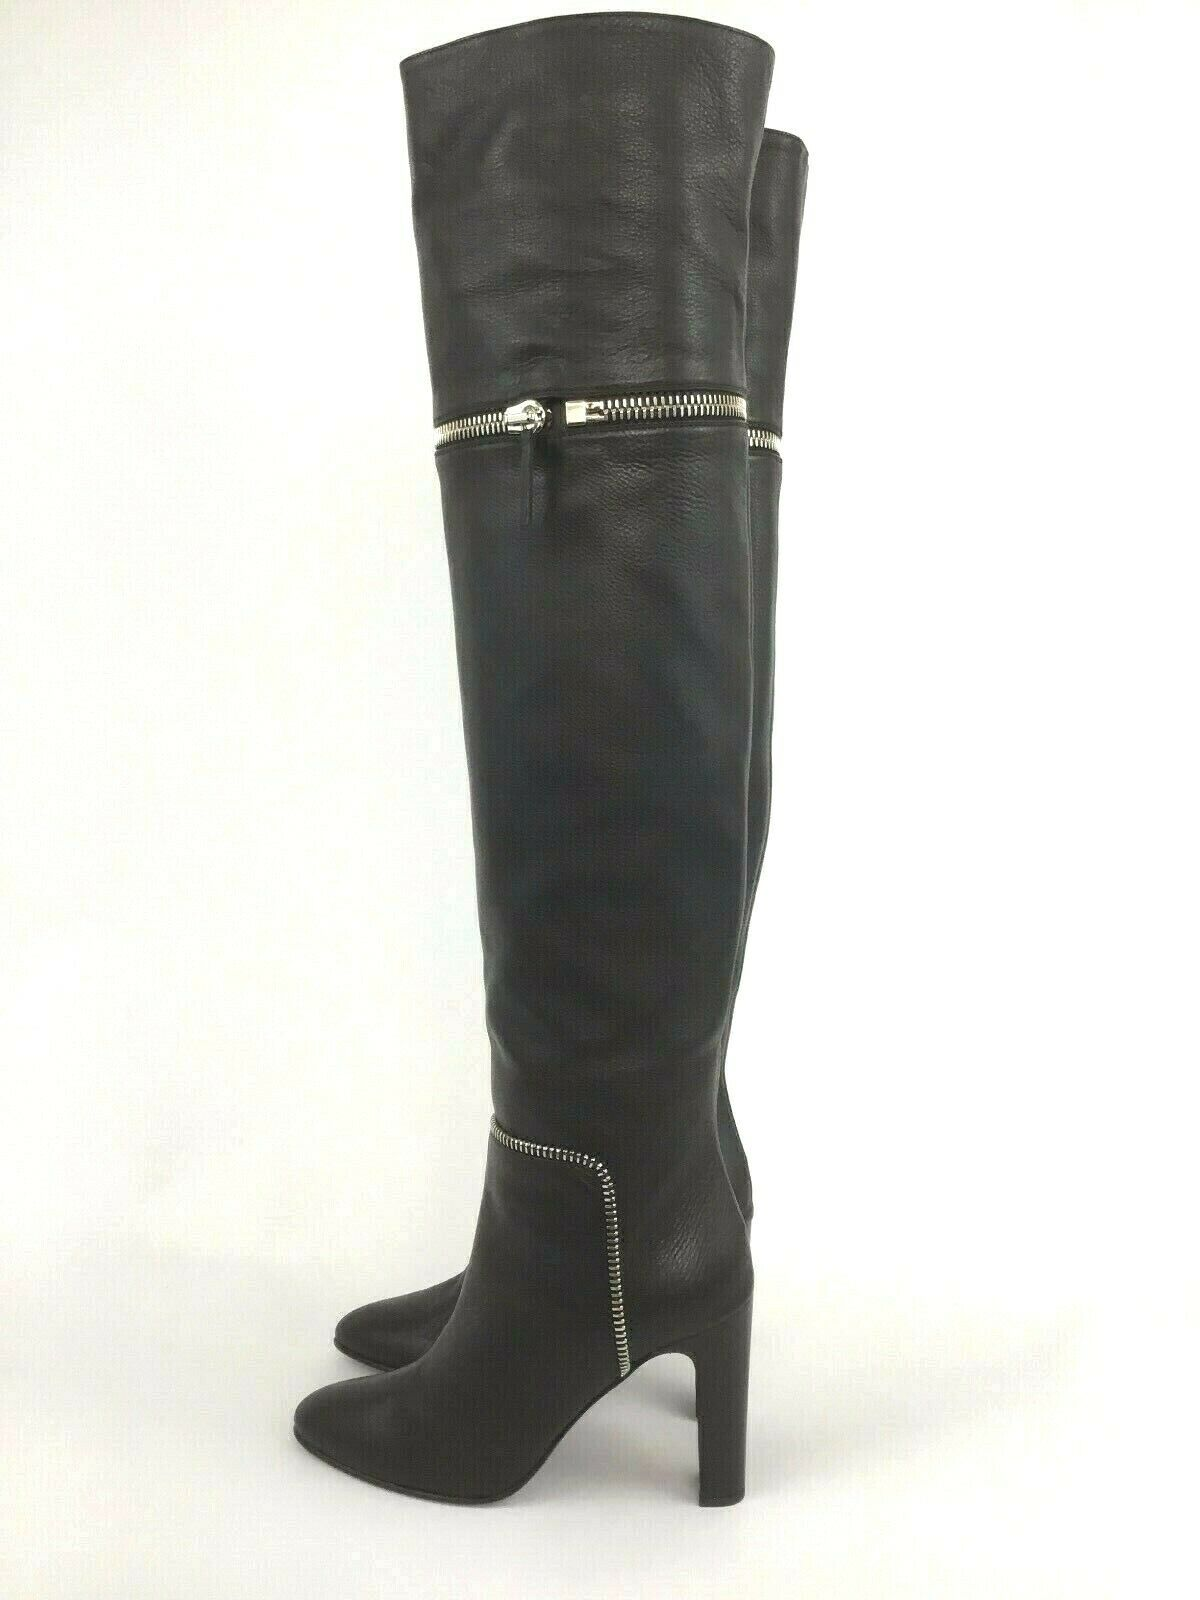 Giuseppe Zanotti Bimba Black Leather Over The Knee Boot 38 38 38 8 02b2ed